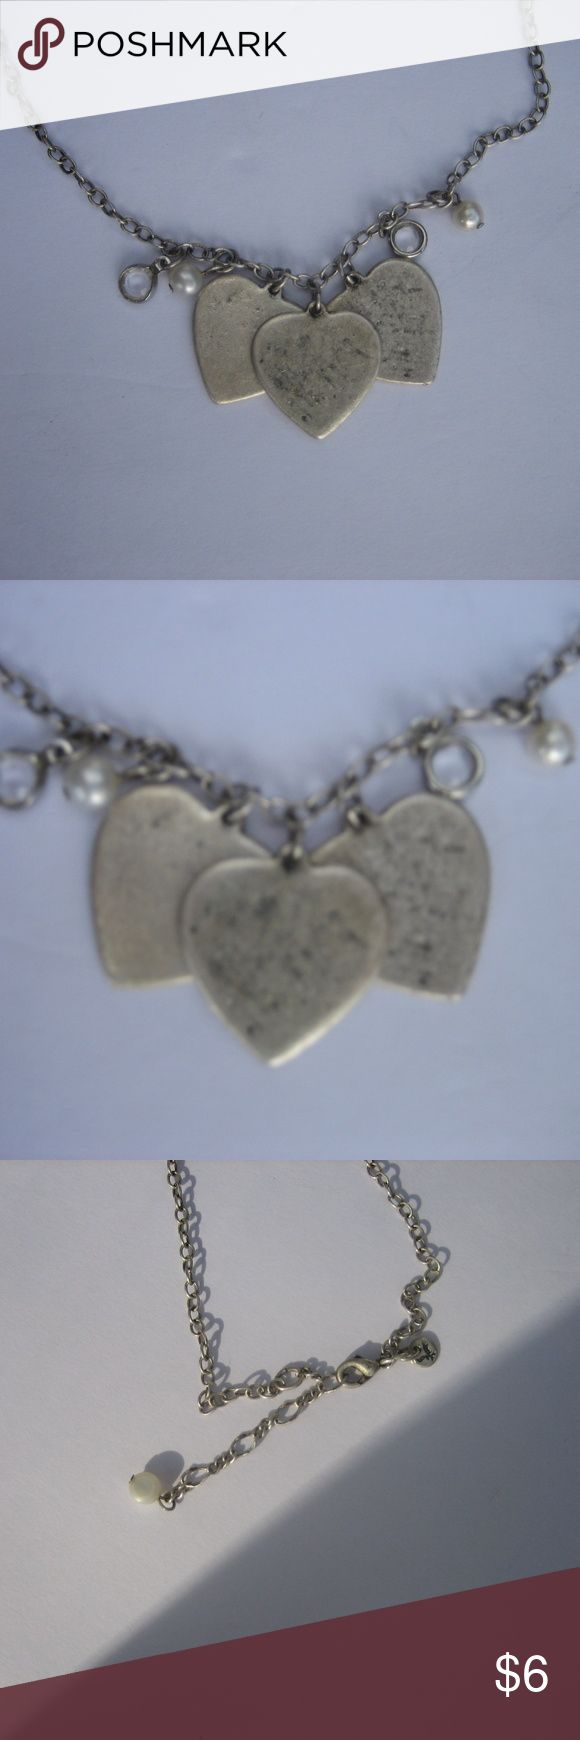 """Women's American Eagle Triple Heart Necklace Materials: Silver tone chain. Three silver tone heart charms. Two faux crystal charms. Two faux pearl charms. Claw clasp.  Details: The necklace length is adjustable, American eagle logo charm is located on clasp. Necklace is lightweight.  Flaws: The heart pendants have light wear.  Measurements: Full Extended Length:18 1/2"""", Pendant Width(each):3/4"""". American Eagle Outfitters Jewelry Necklaces"""